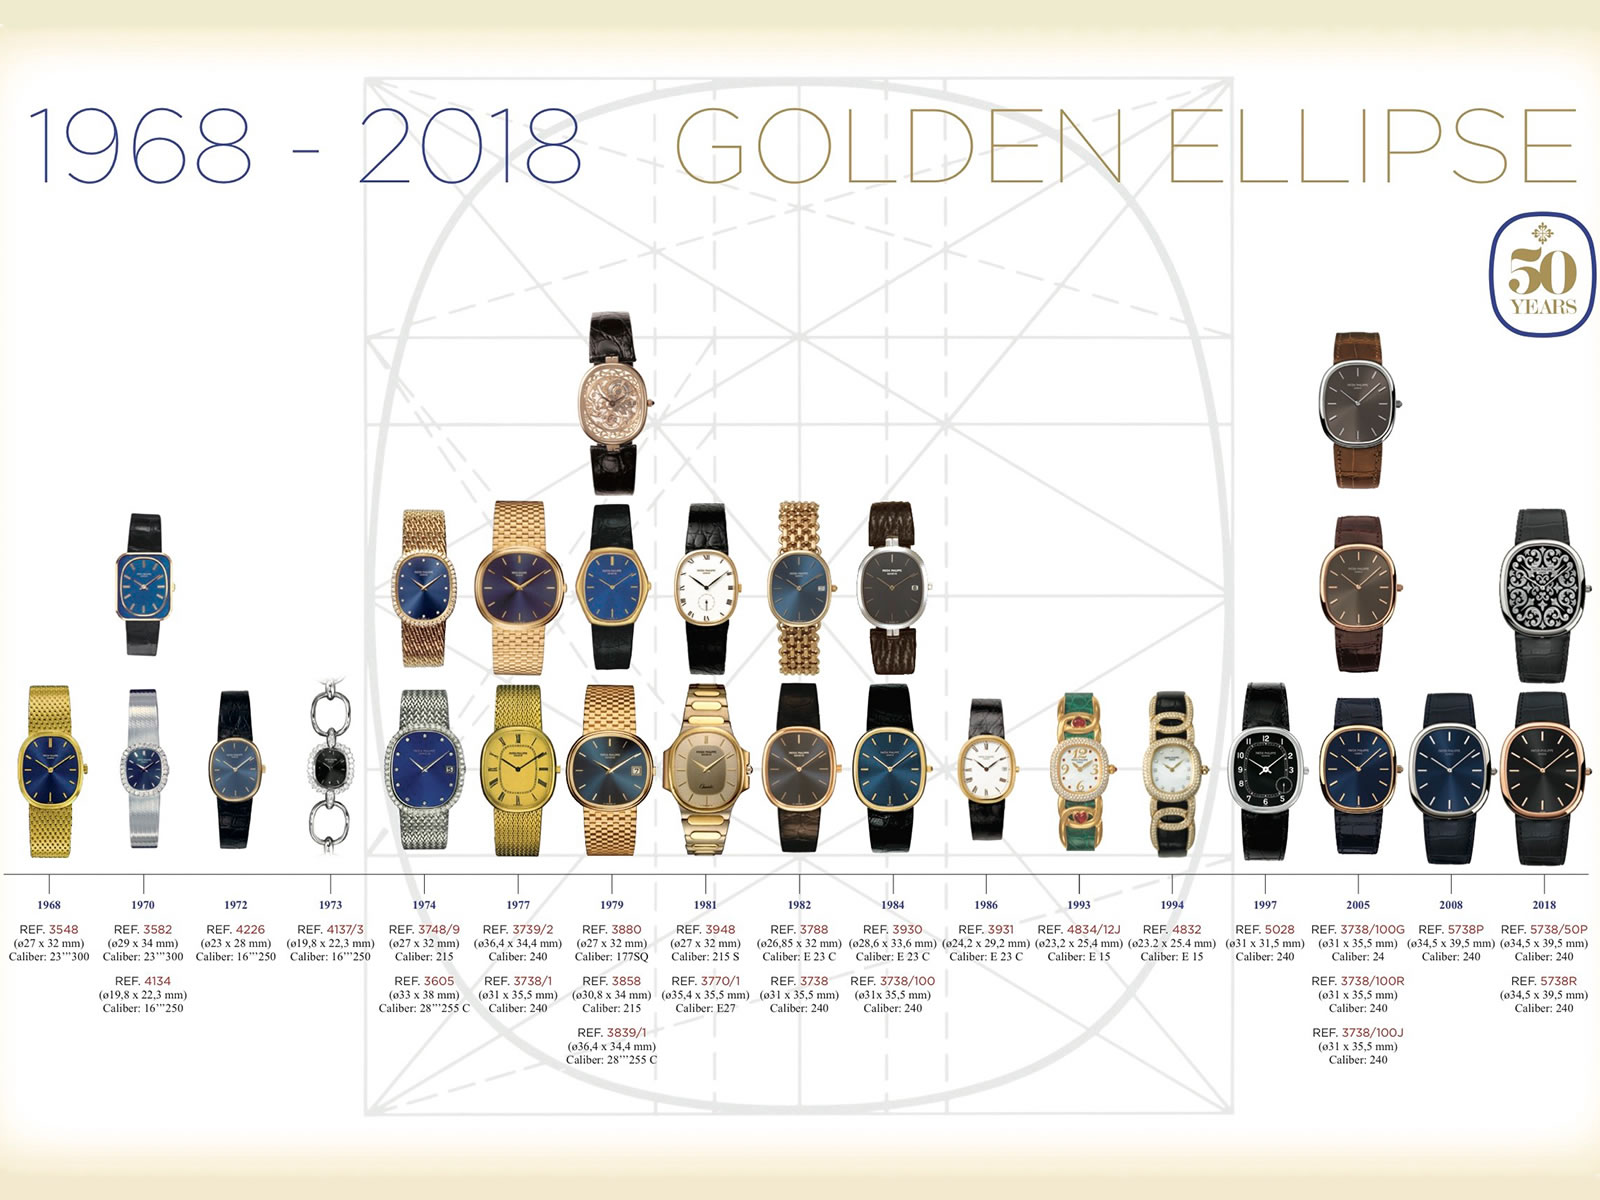 patek-philippe-golden-ellipse-1968-2018-1-.jpg